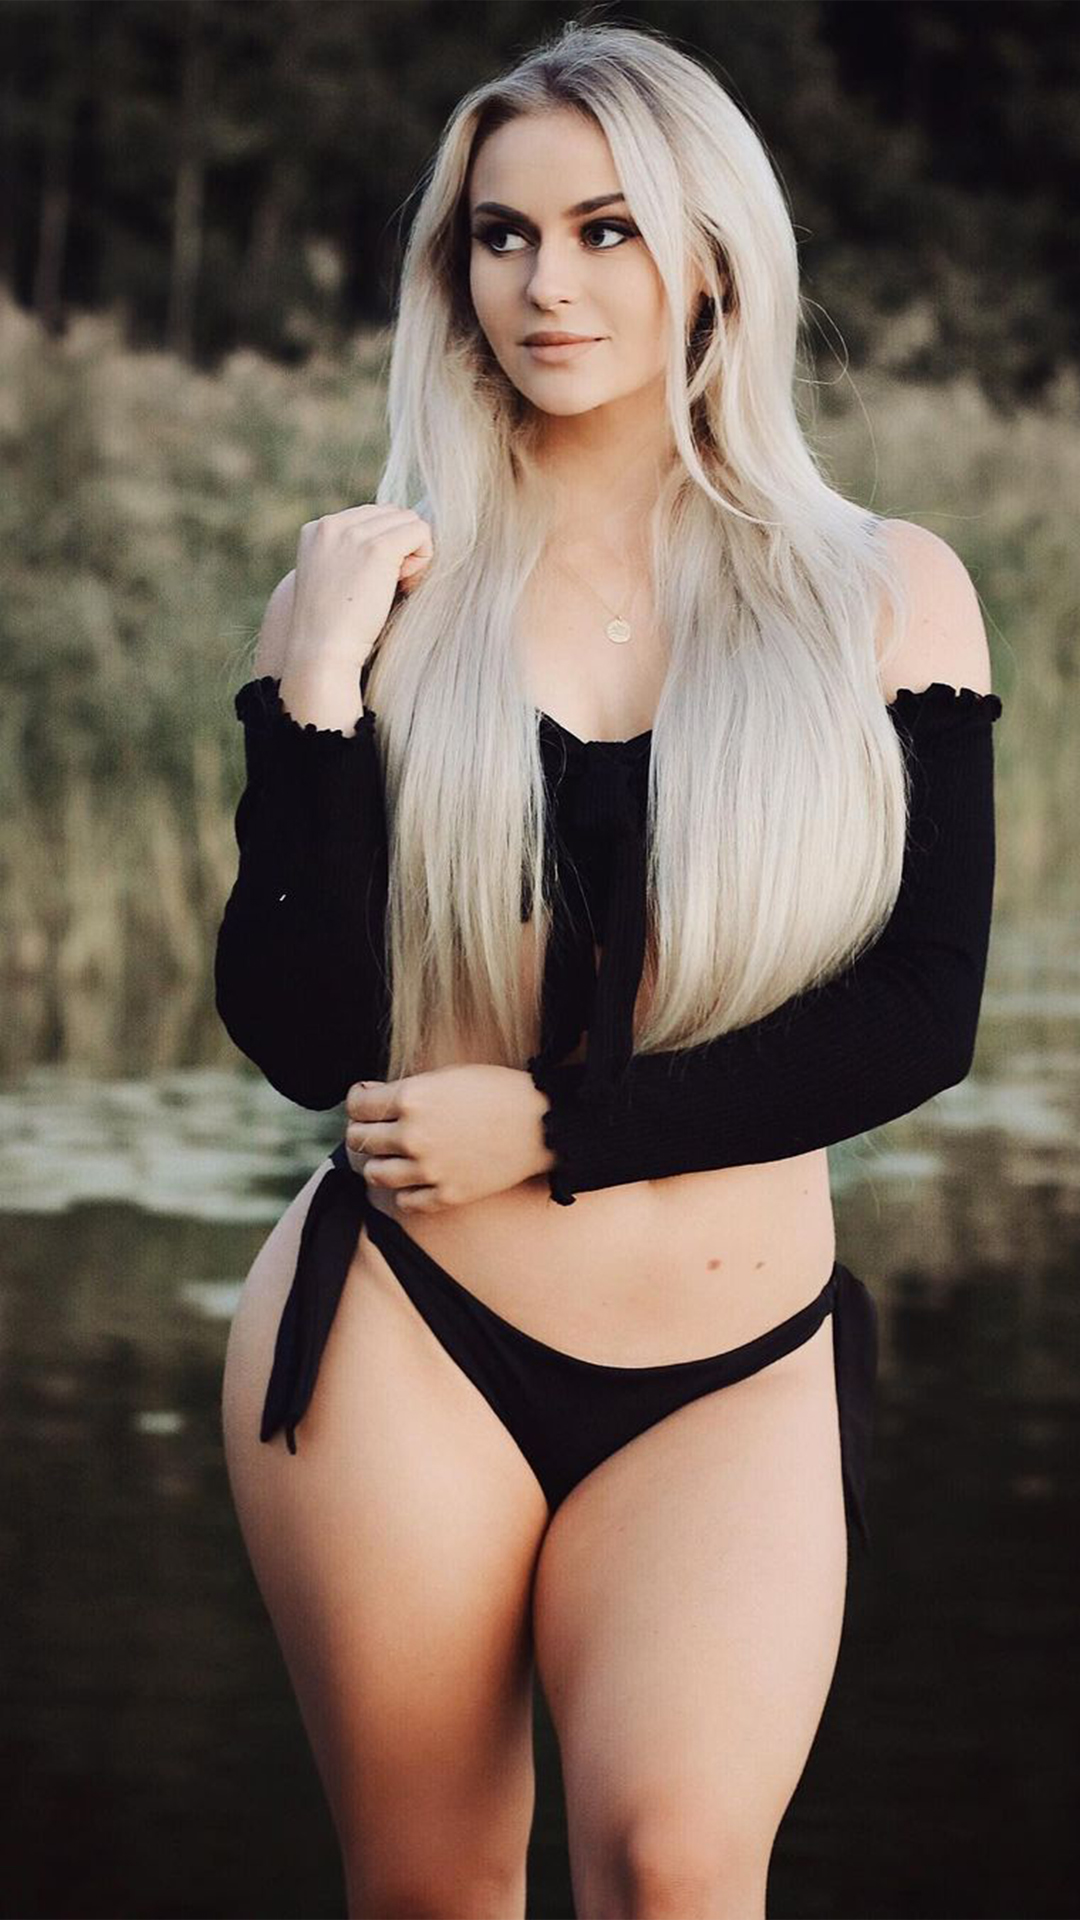 4K Full HD Anna Nystrom Wallpapers Download